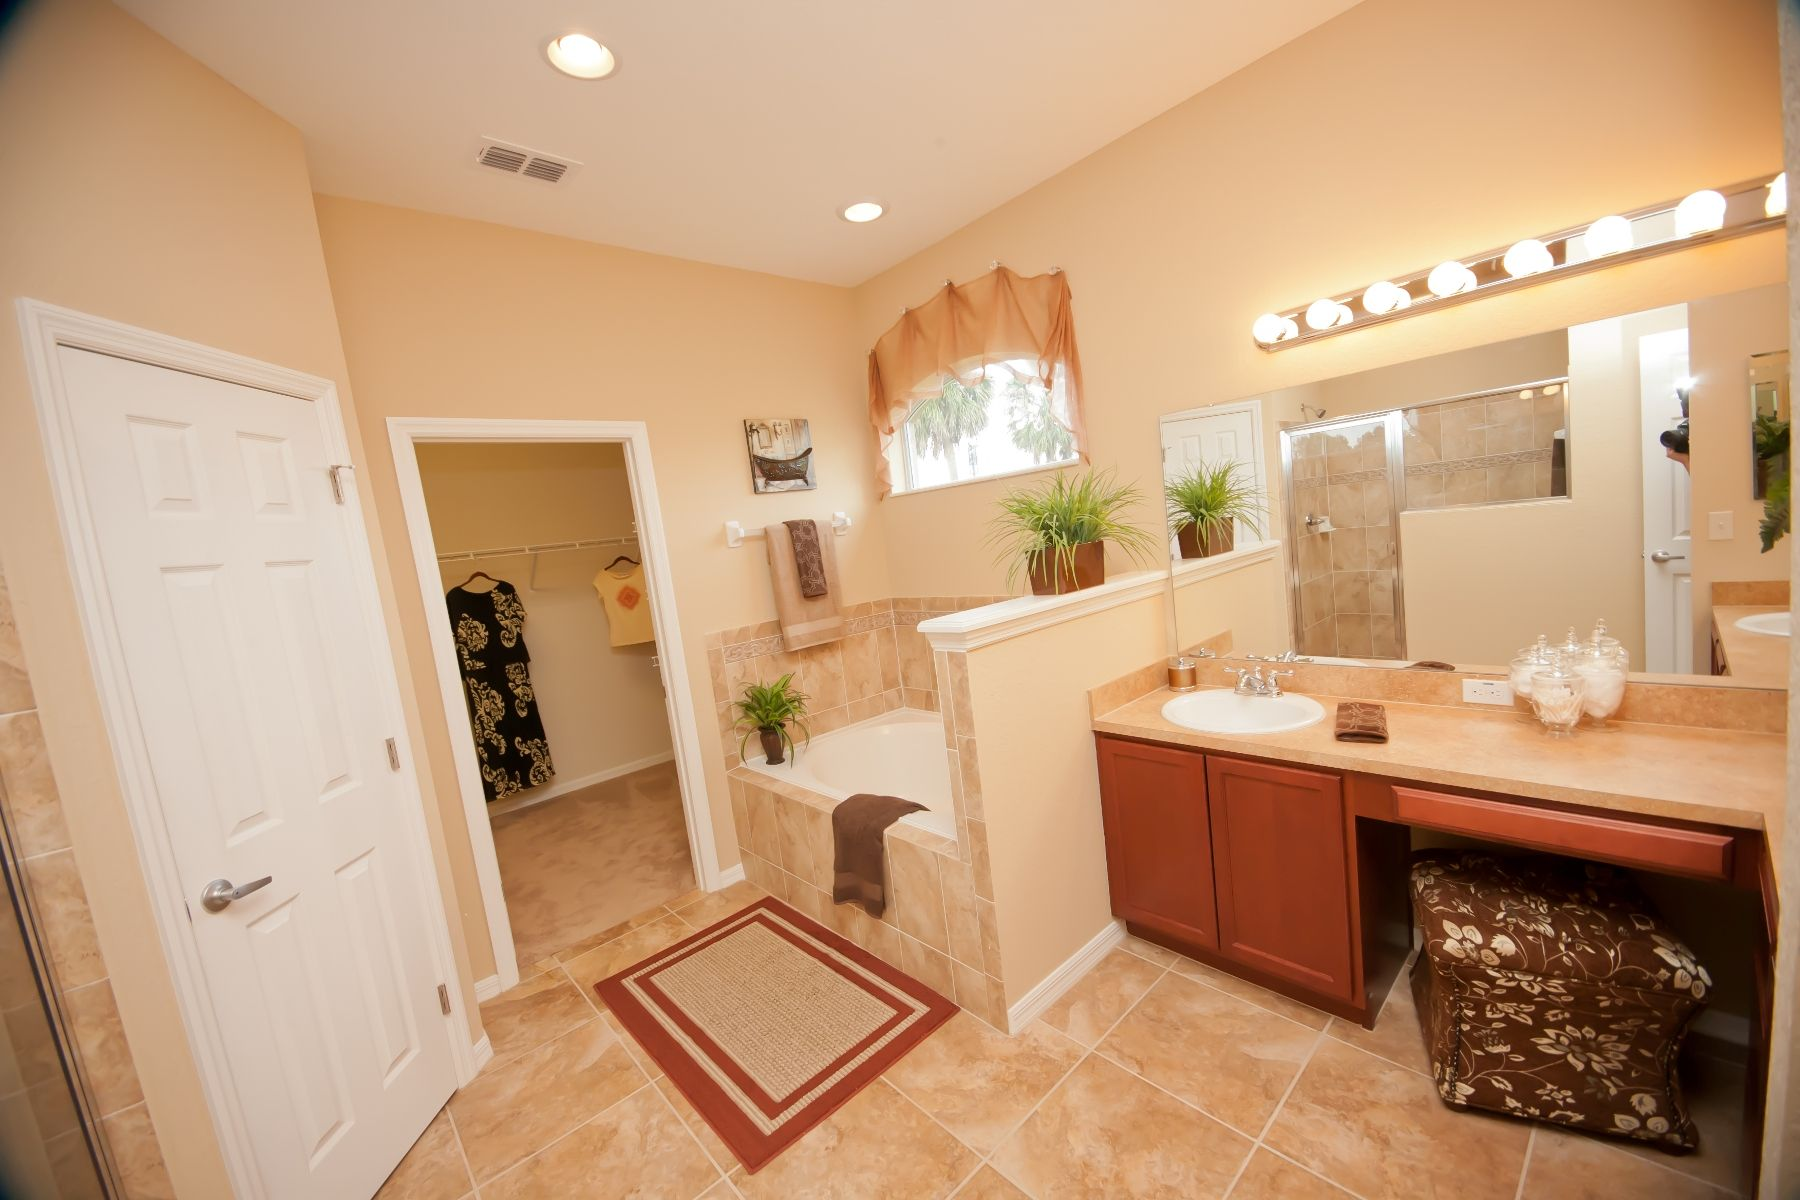 L-shaped vanity, garden tub, tiled shower, spacious walk-in closet ...